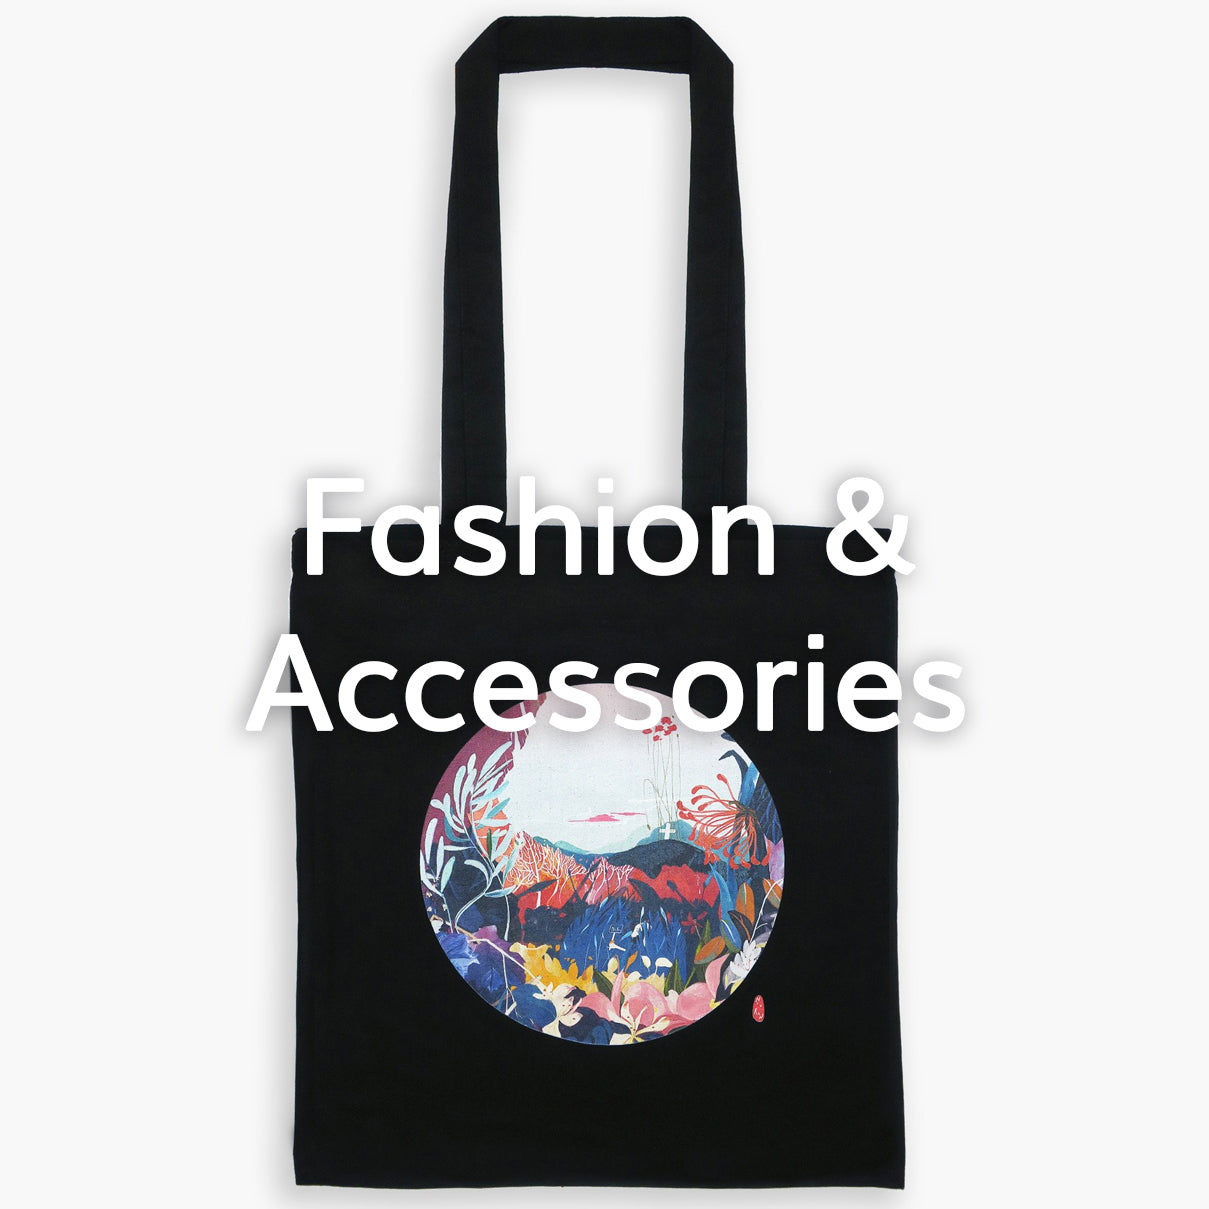 Japanese fashion and accessories in London